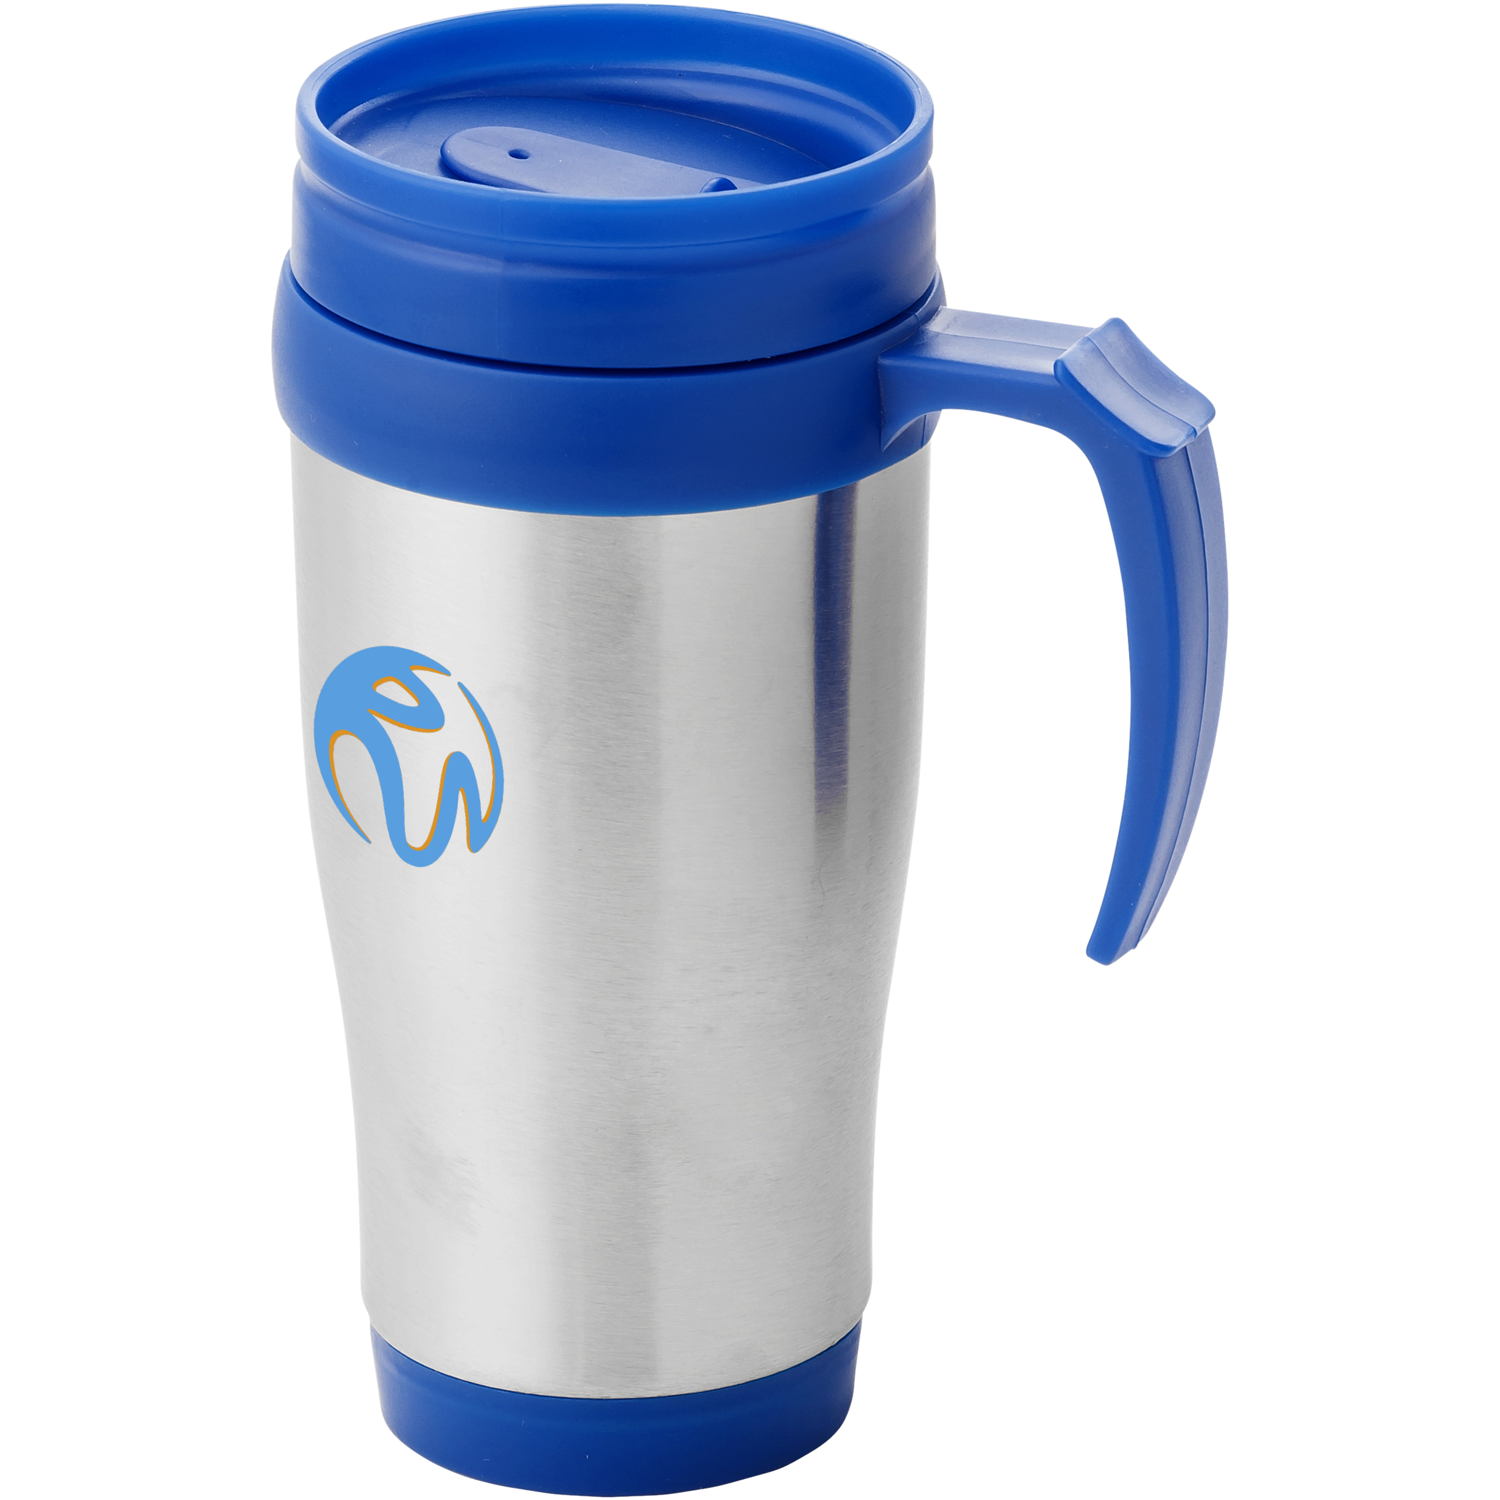 Sanibel 400 Ml Insulated Mug